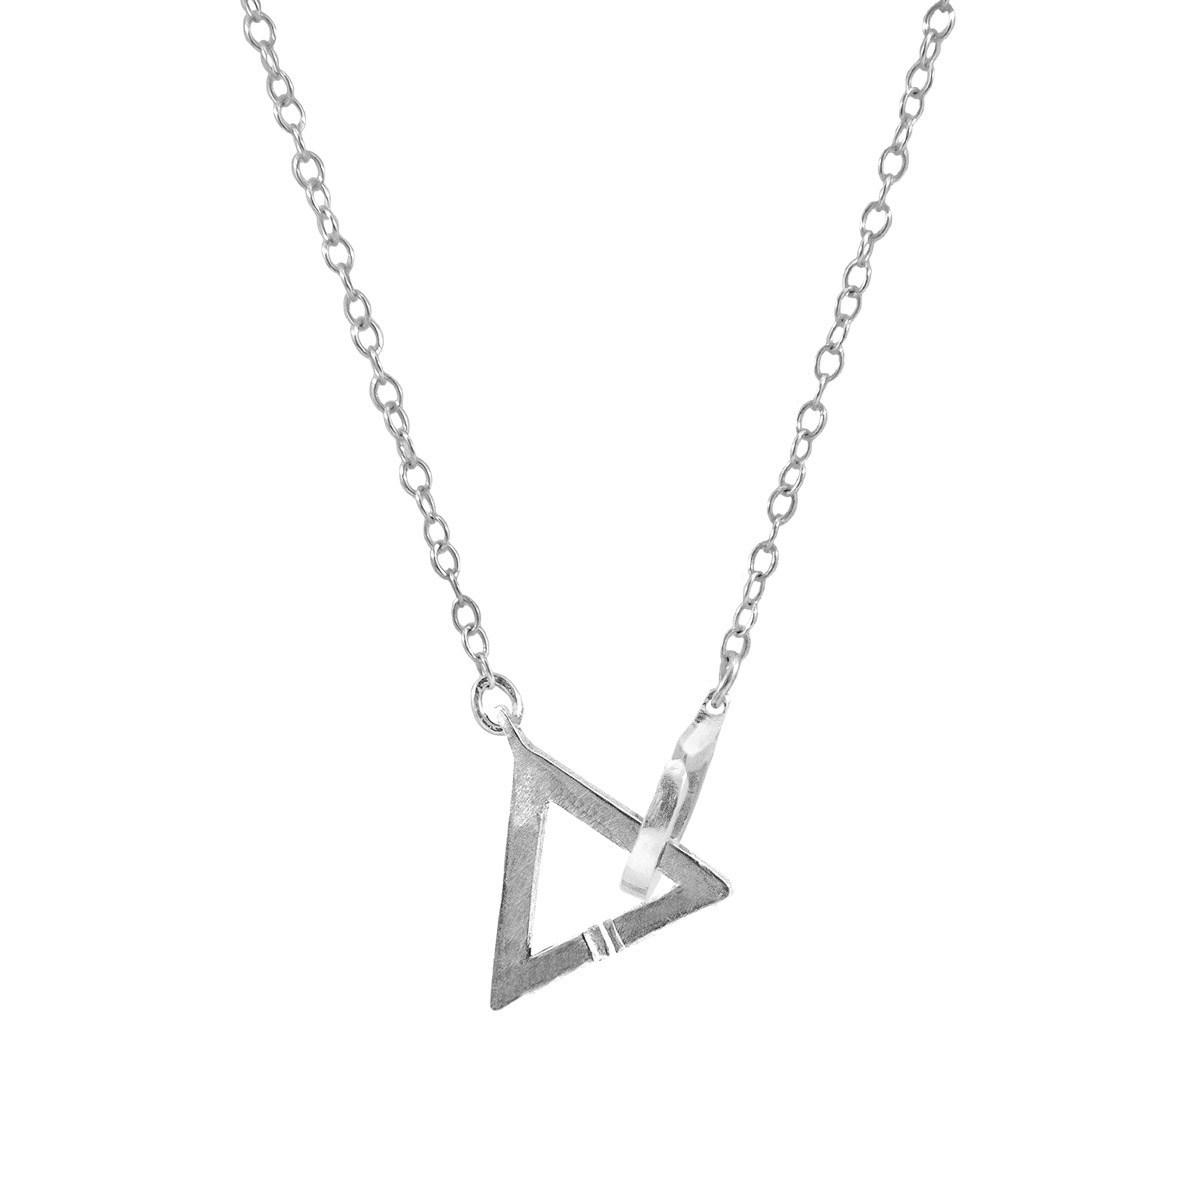 collier femme argent triangle